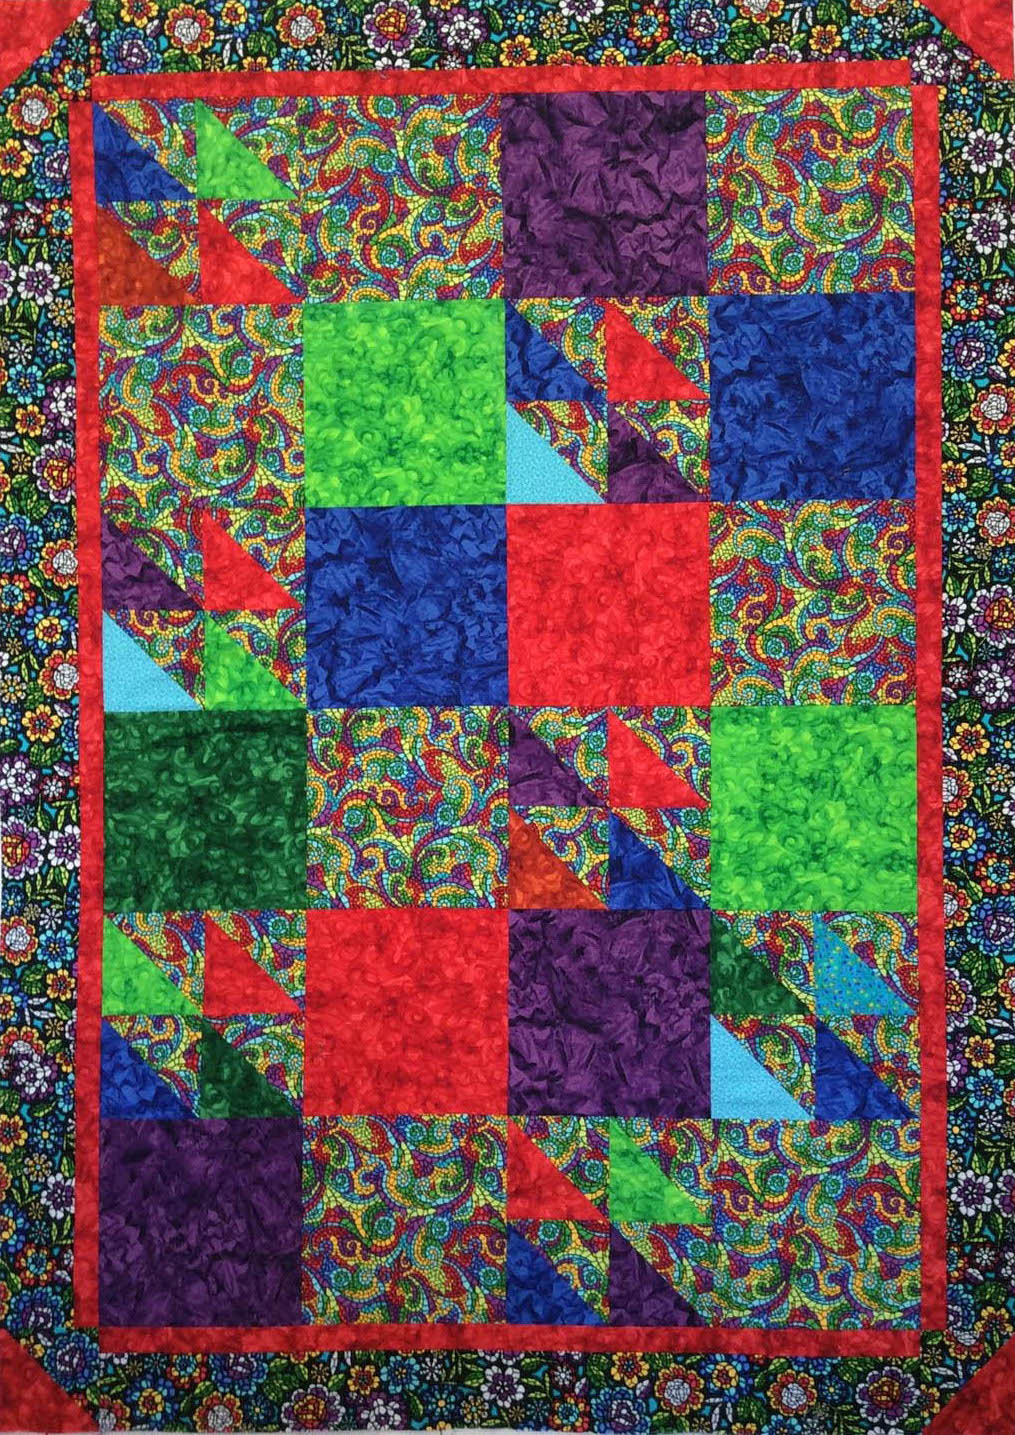 The original quilt top donated by Veronica